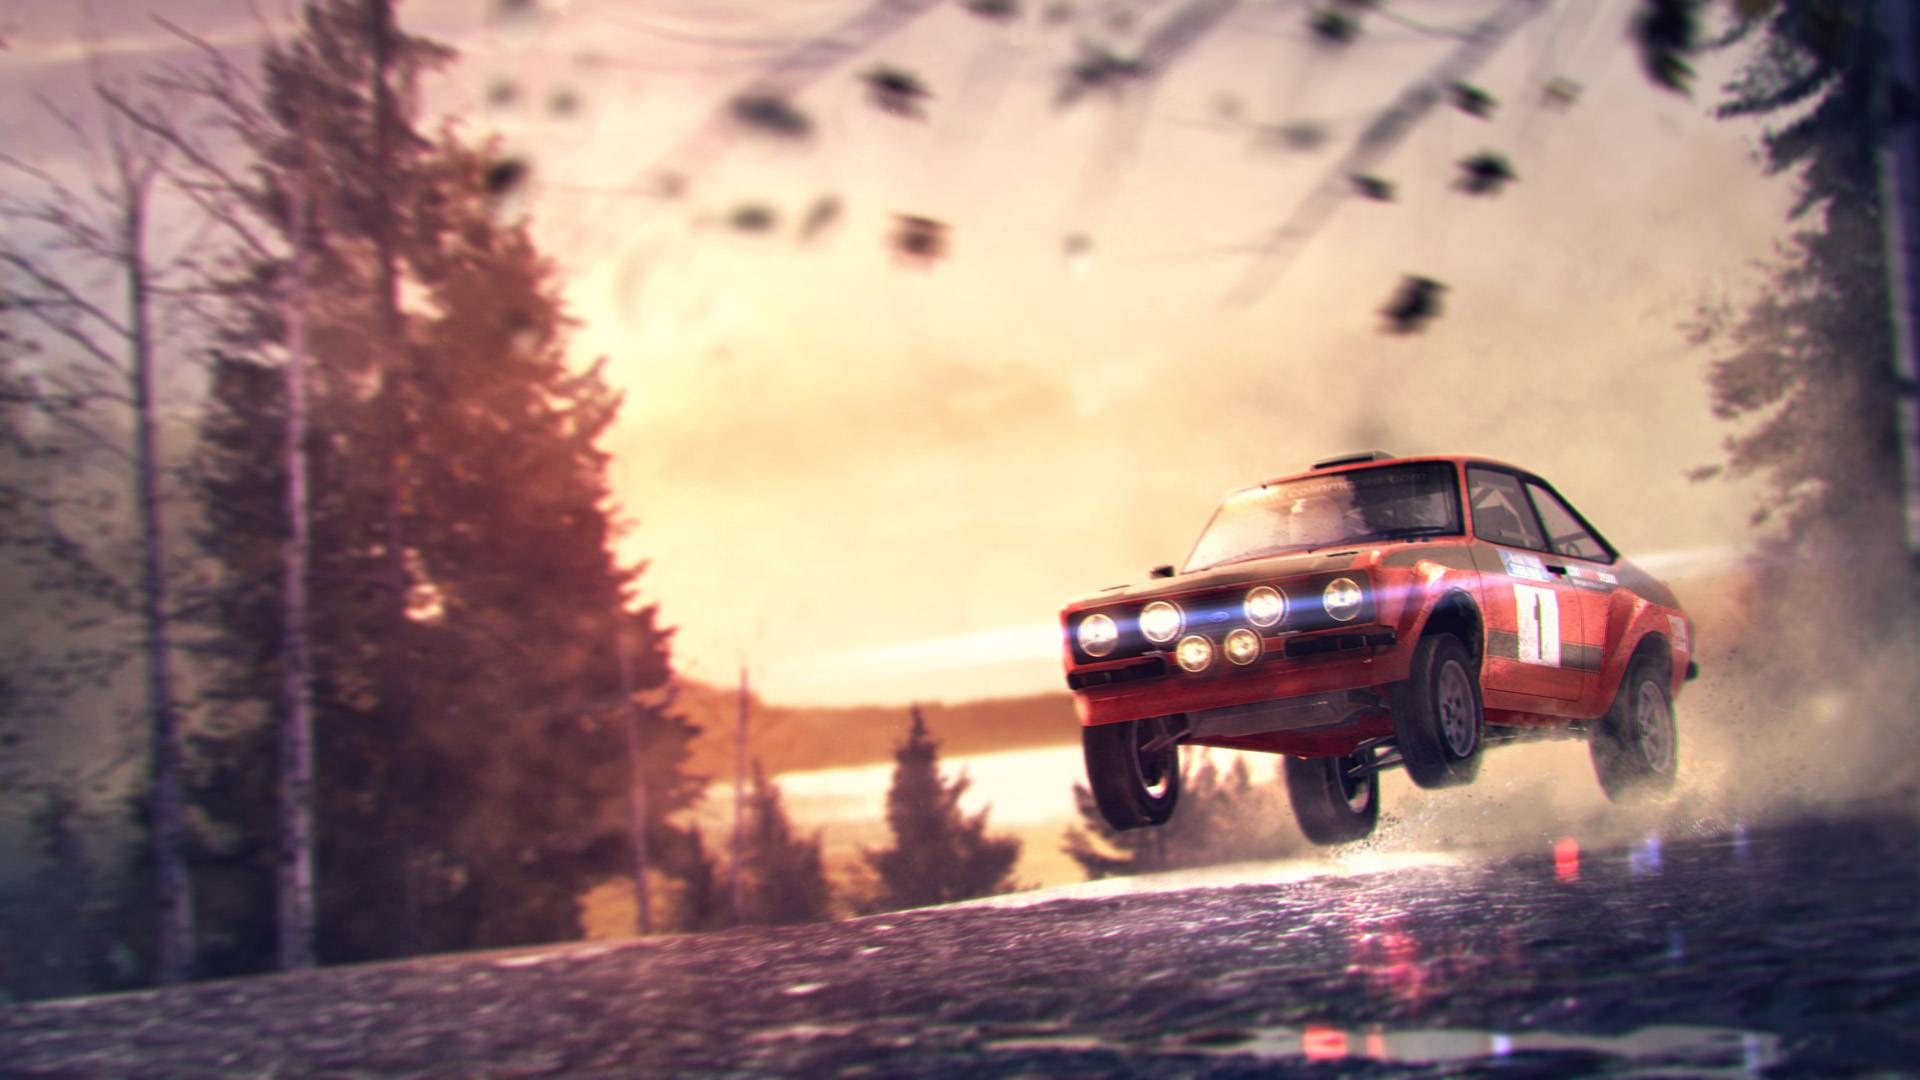 DiRT 3 Wallpapers in full 1080P HD GamingBoltcom Video Game News 1920x1080